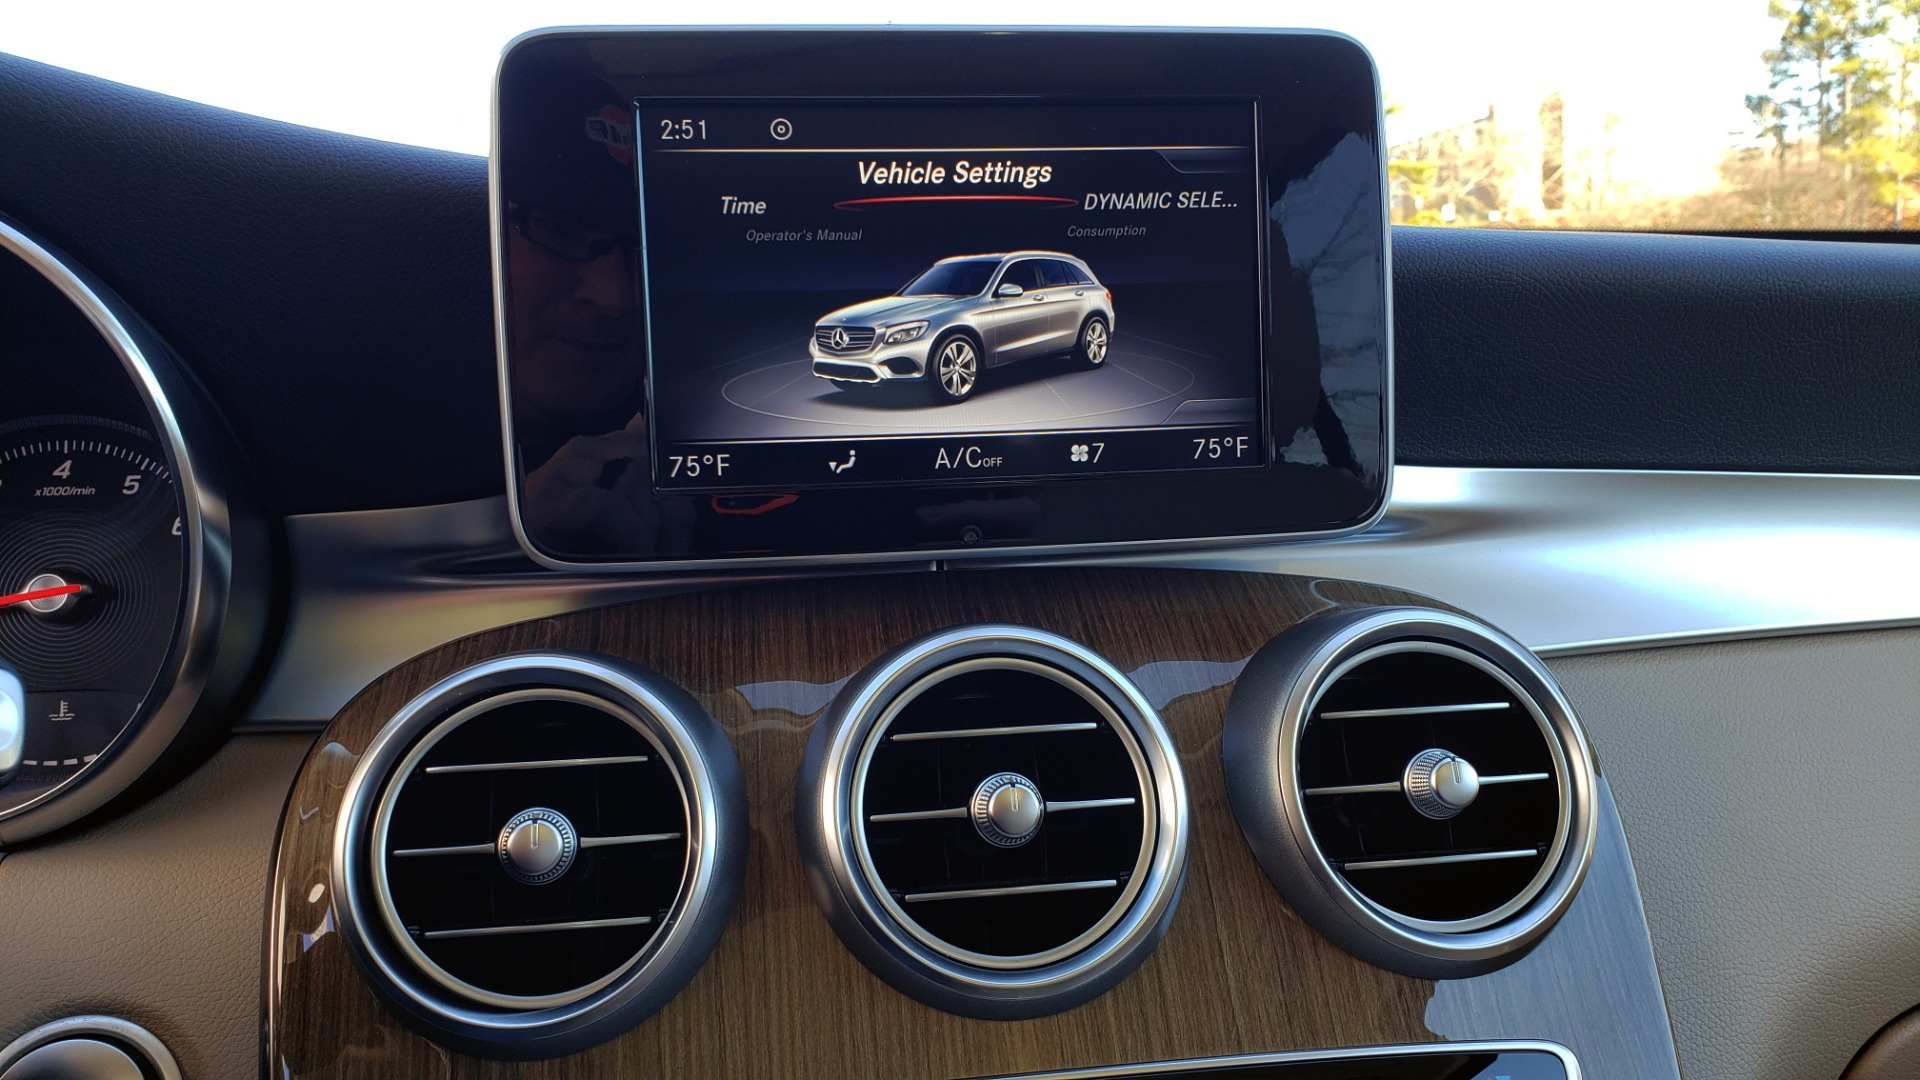 Used 2018 Mercedes-Benz GLC 300 4MATIC / PREM PKG / NAV / SUNROOF / REARVIEW for sale $36,995 at Formula Imports in Charlotte NC 28227 52